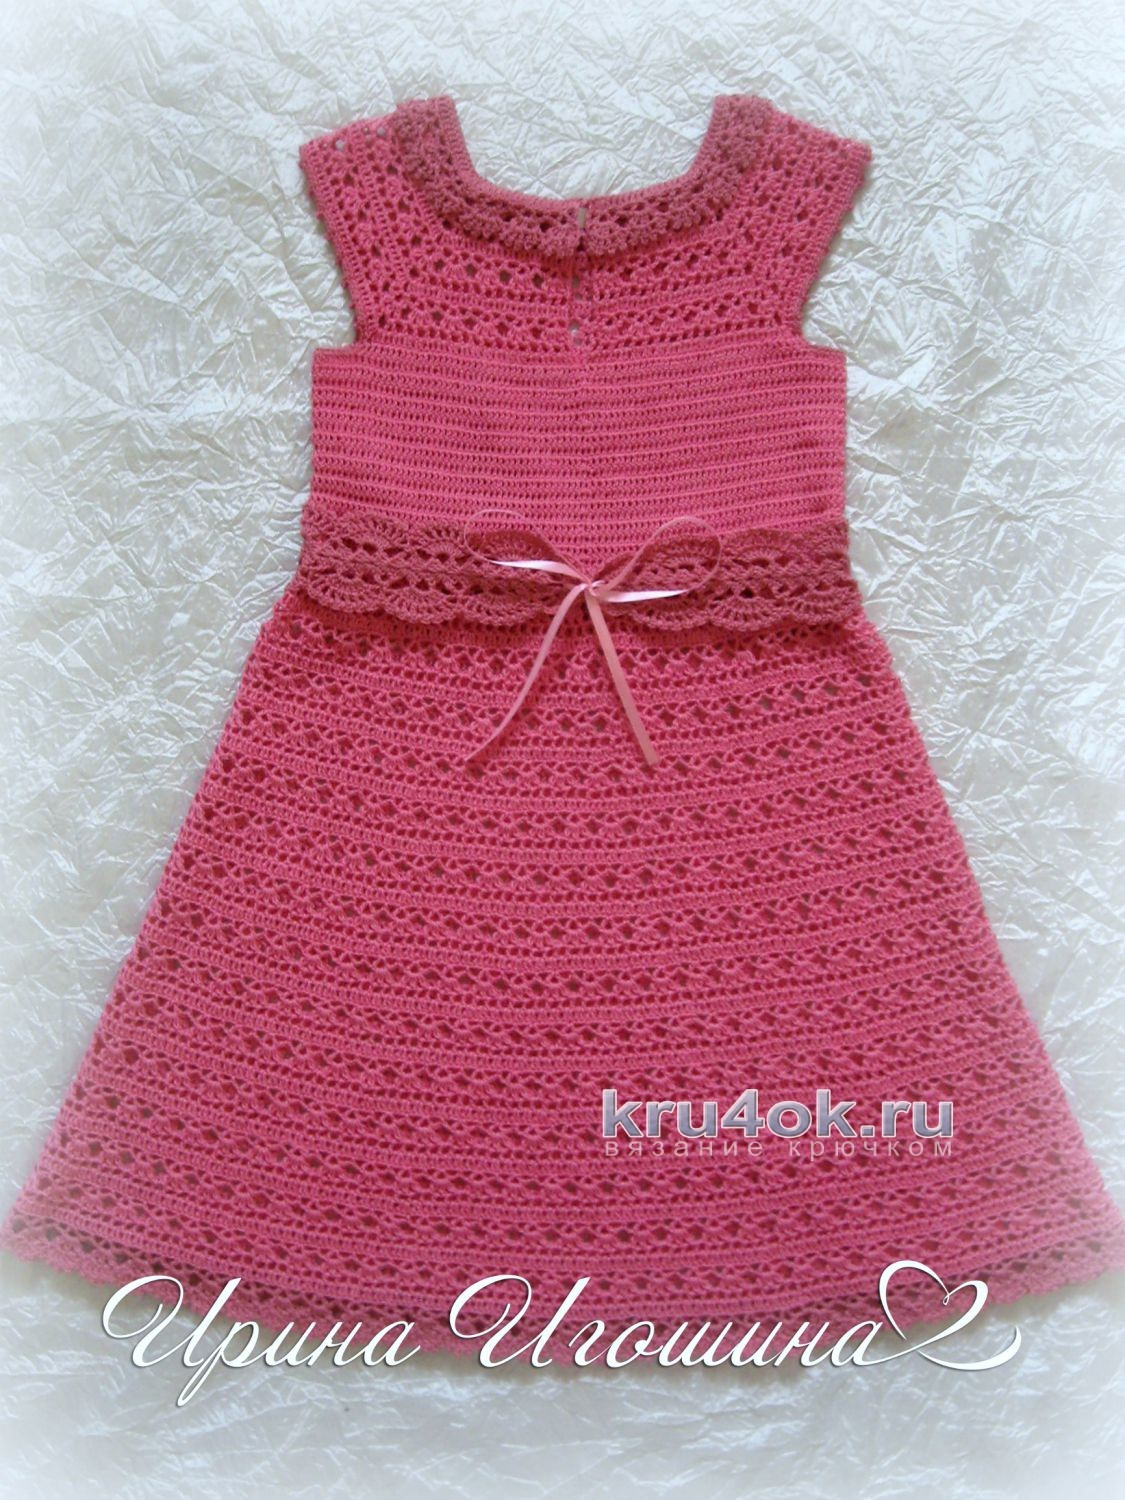 Crochet Patterns For Free Crochet Baby Dress 1545